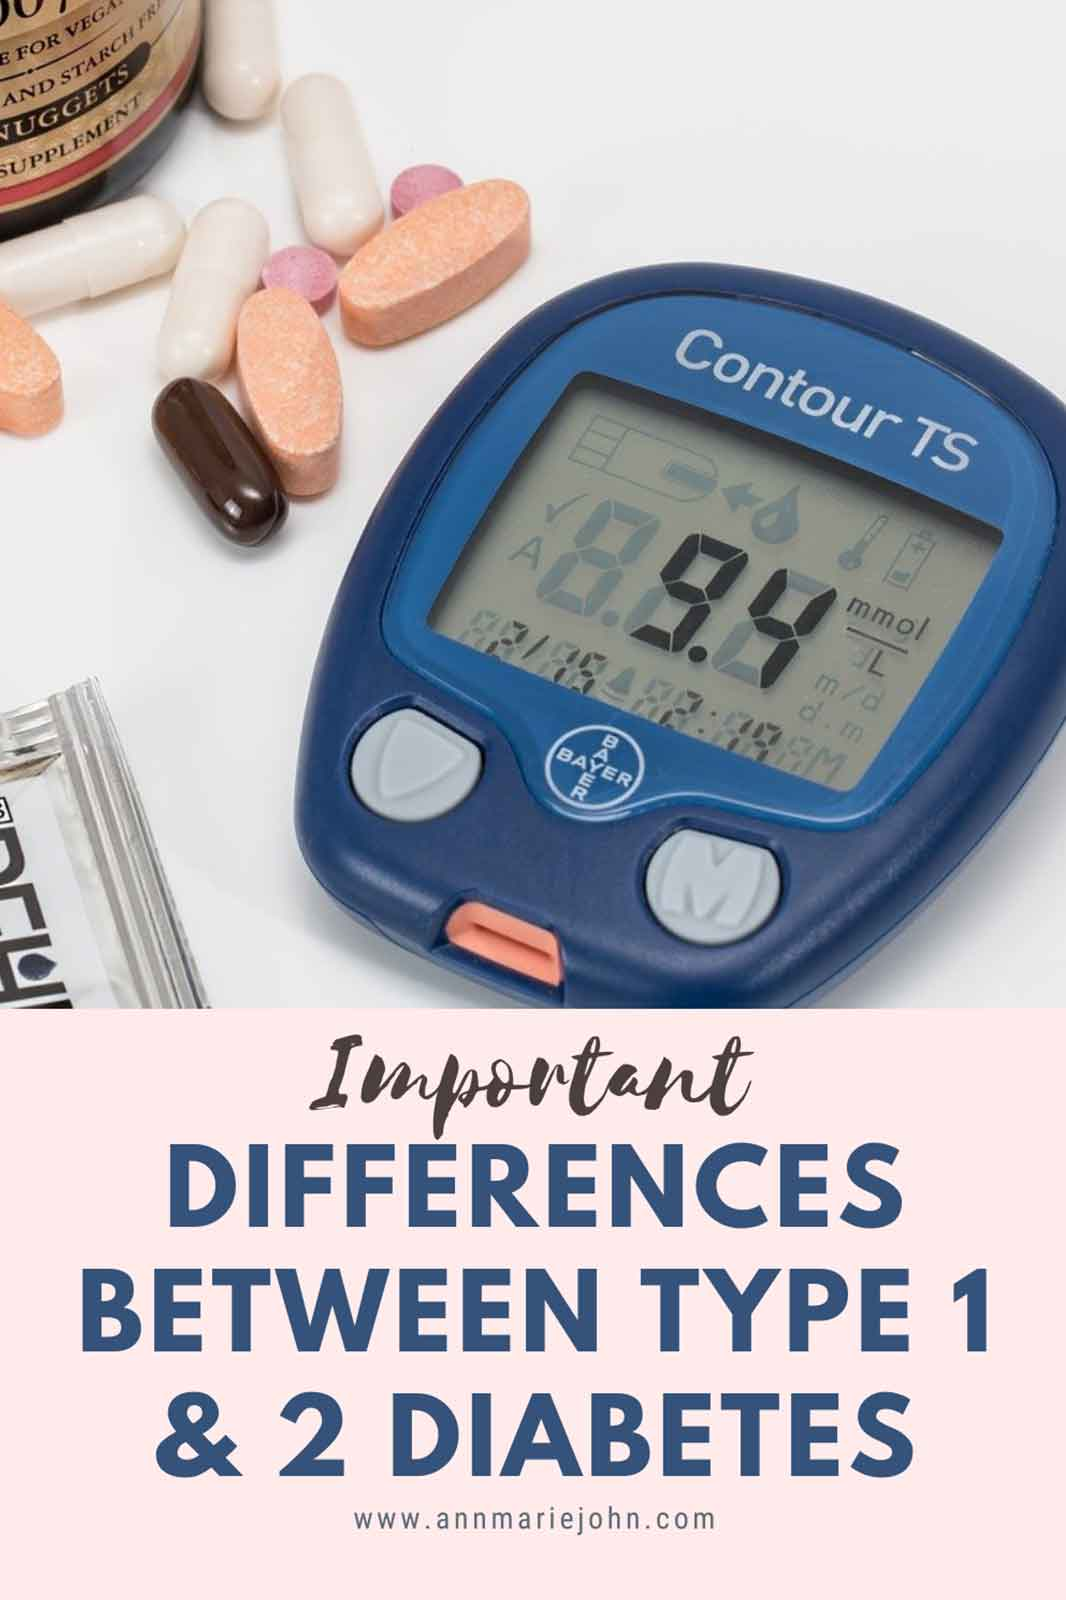 The Important Differences Between Diabetes Type 1 and 2